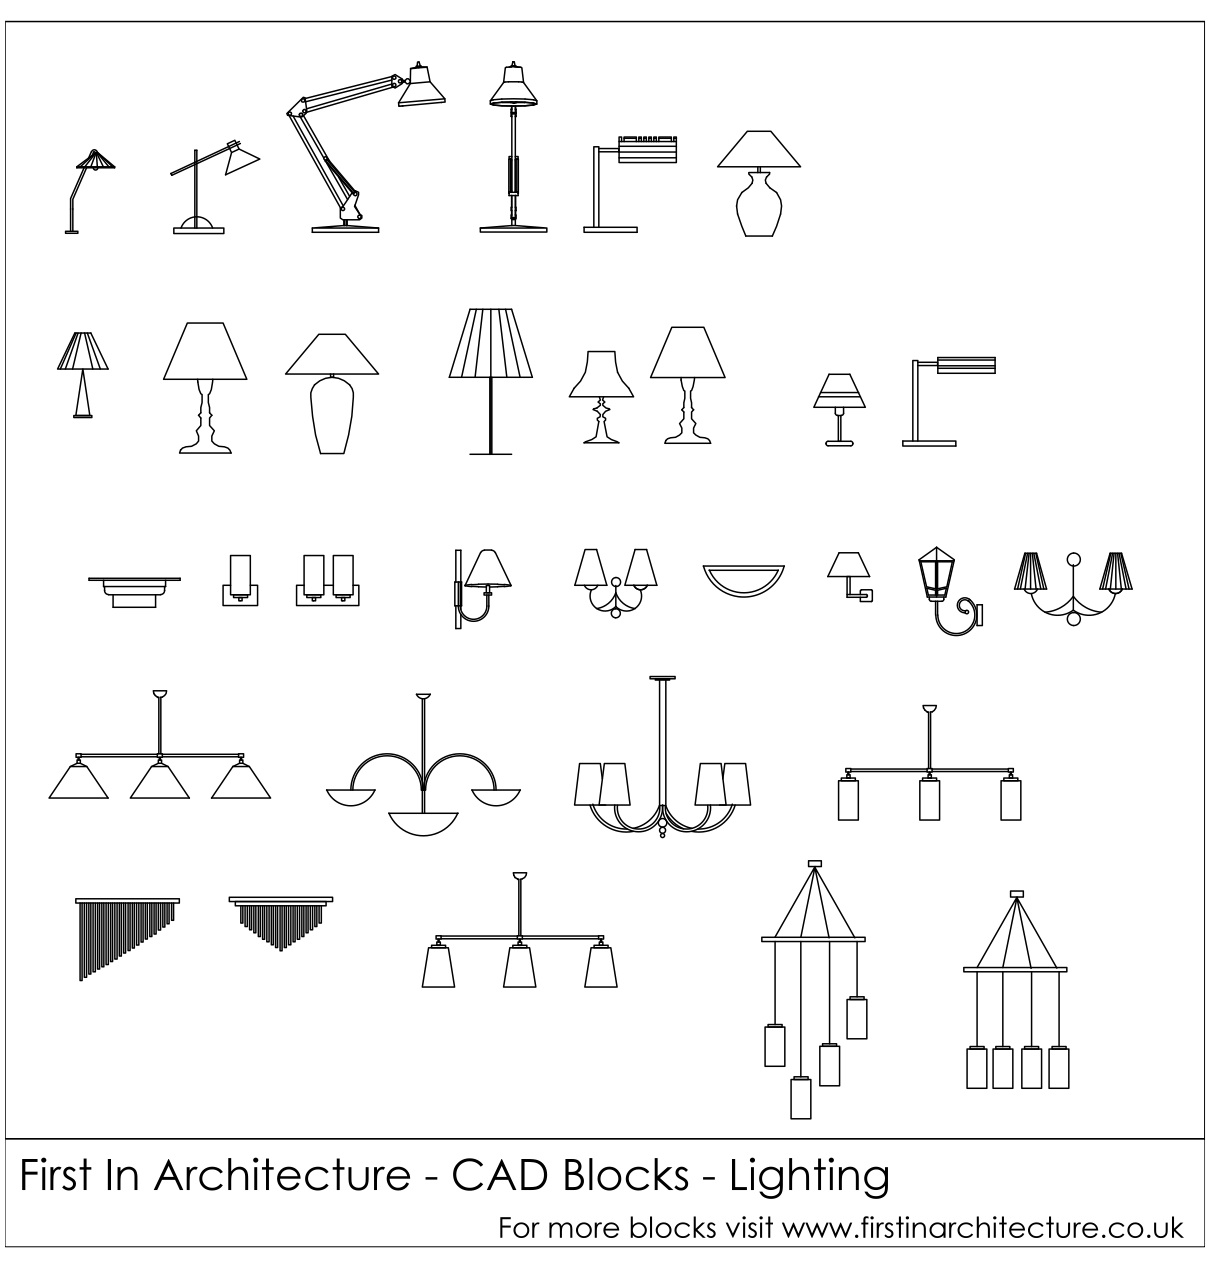 Wall Light Cad Blocks Free Download : Free CAD Blocks - Lighting First In Architecture